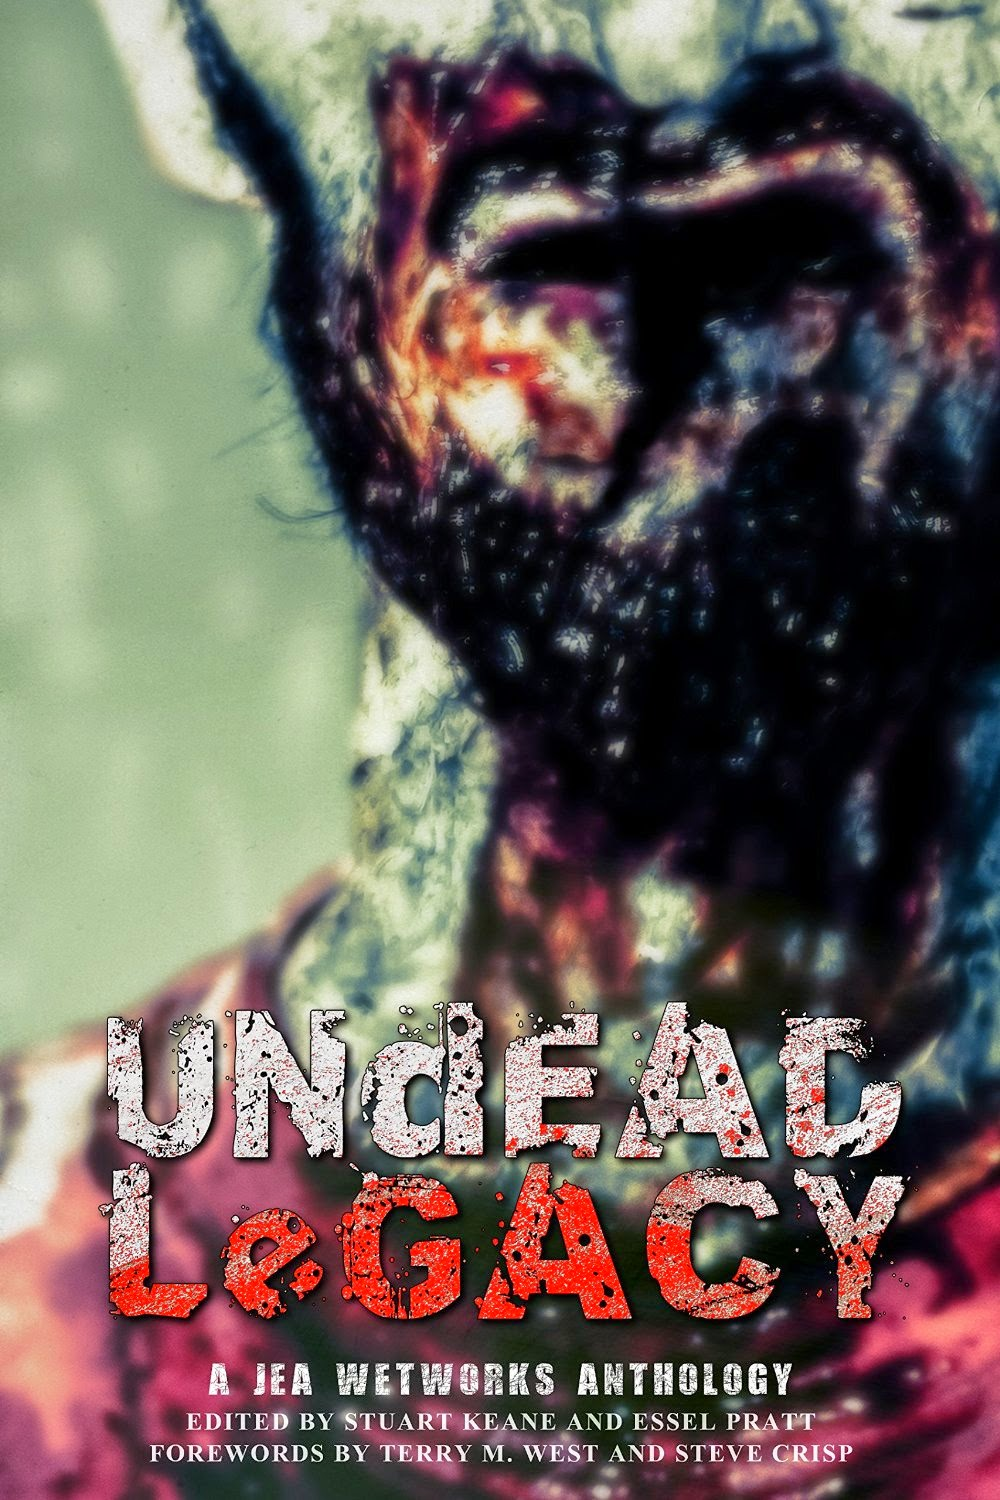 http://www.amazon.com/Undead-Legacy-Stuart-Keane-ebook/dp/B00V9073F0/ref=sr_1_1?ie=UTF8&qid=1427409396&sr=8-1&keywords=Undead+LEgacy